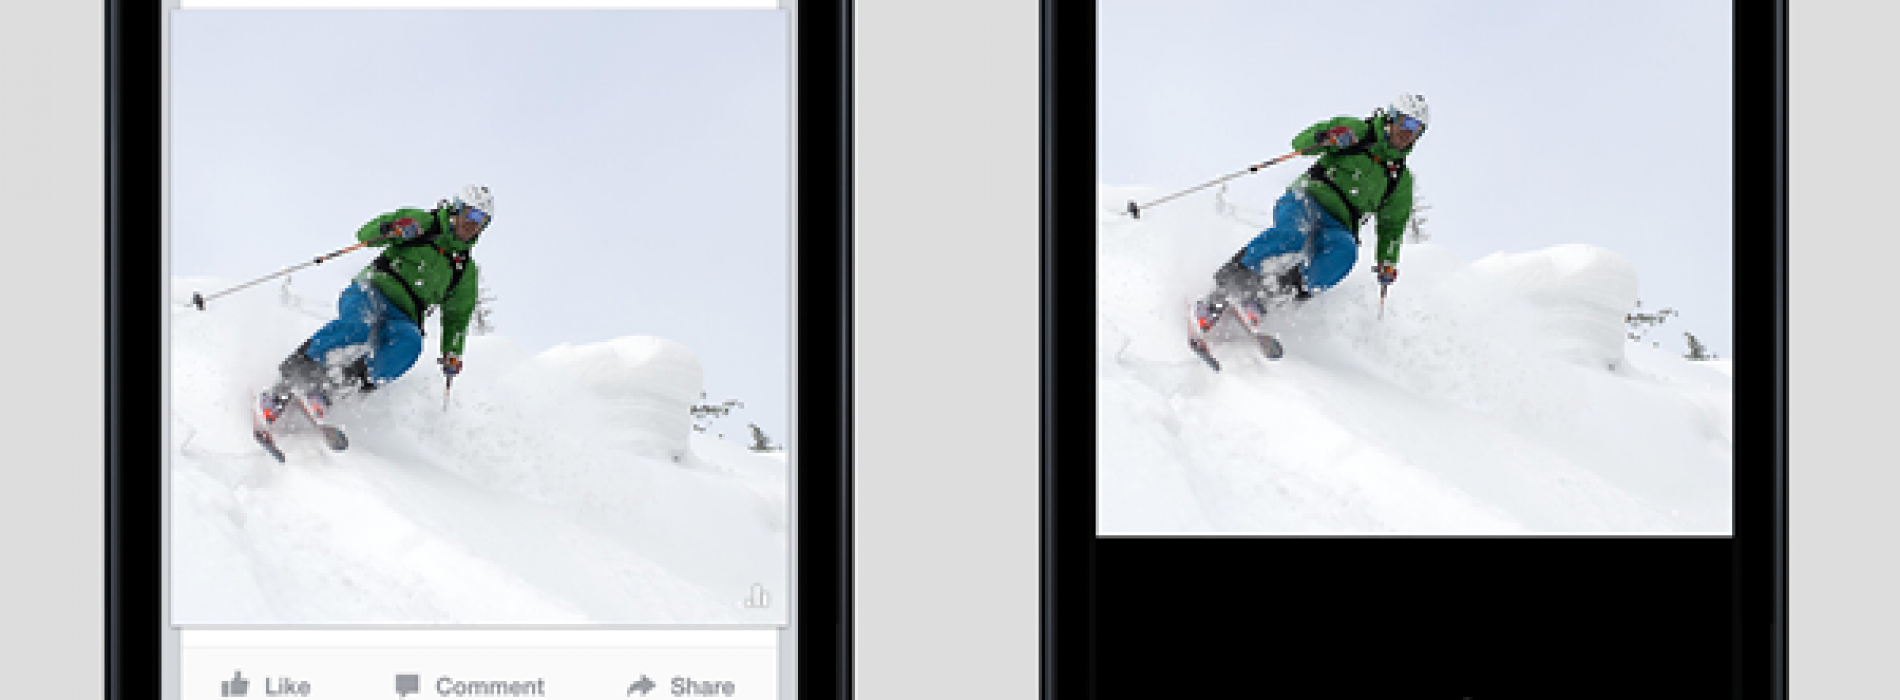 Facebook testing new ways to watch video in mobile app